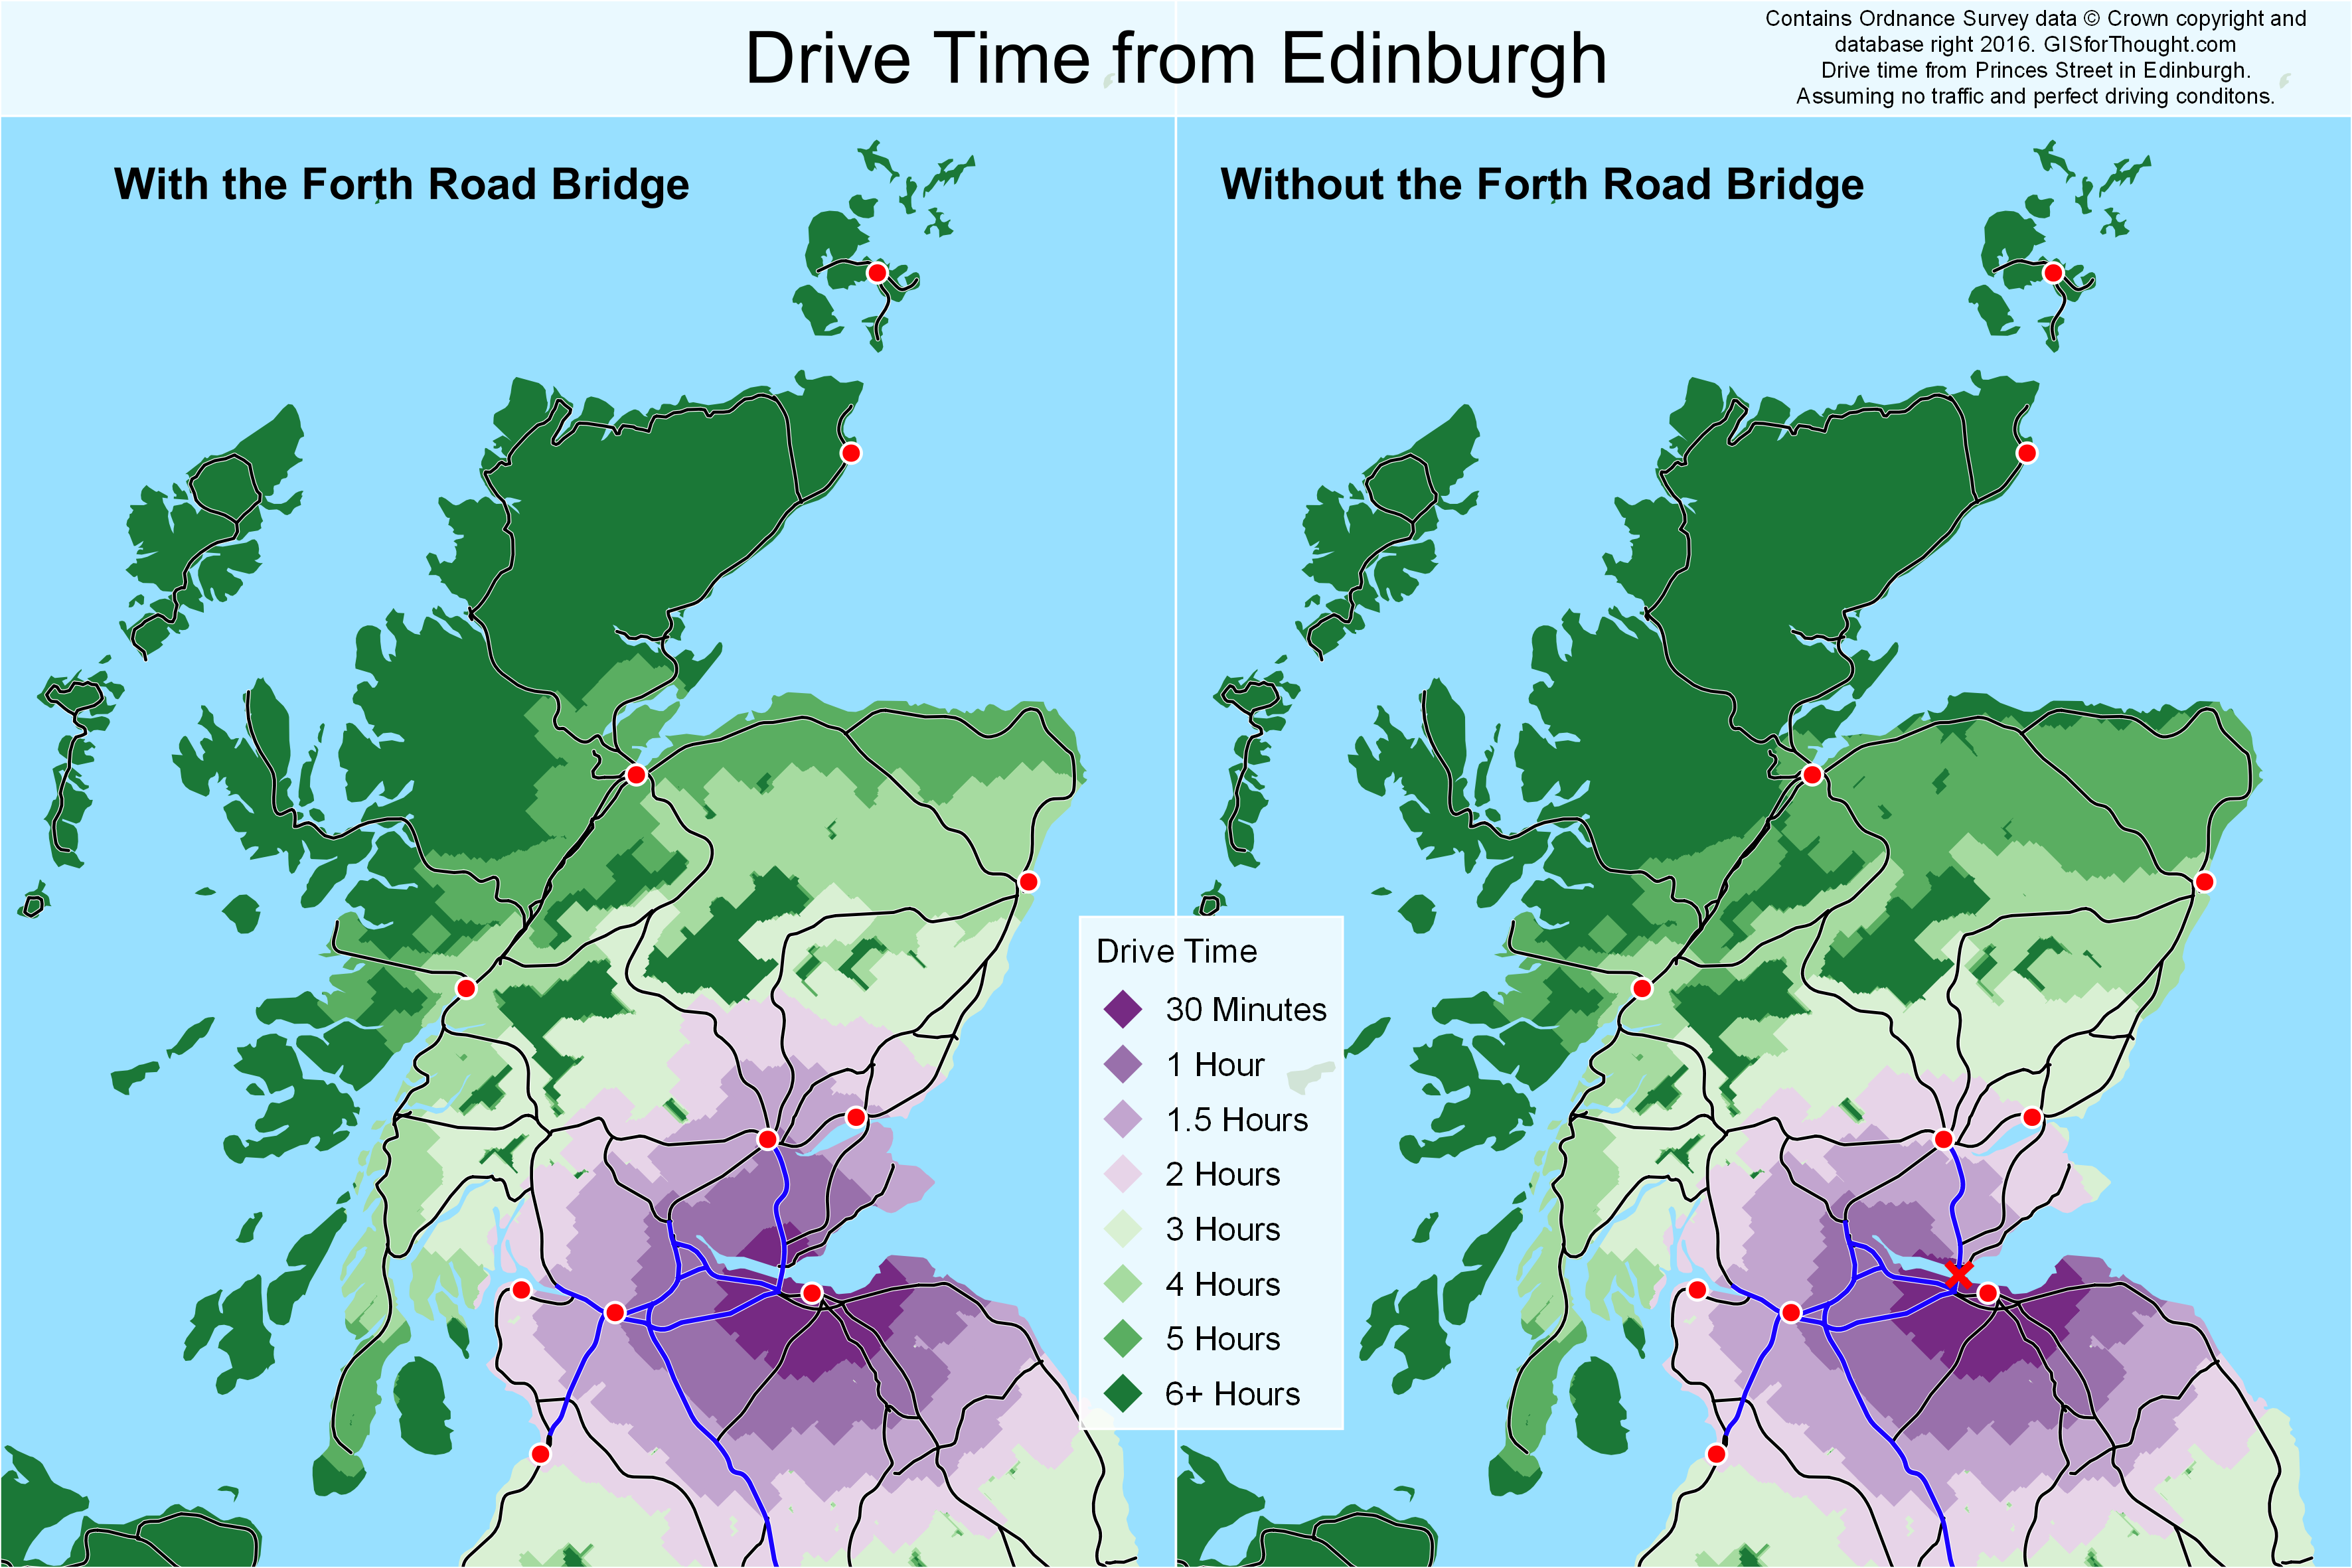 Drive time with and without the forth road bridge